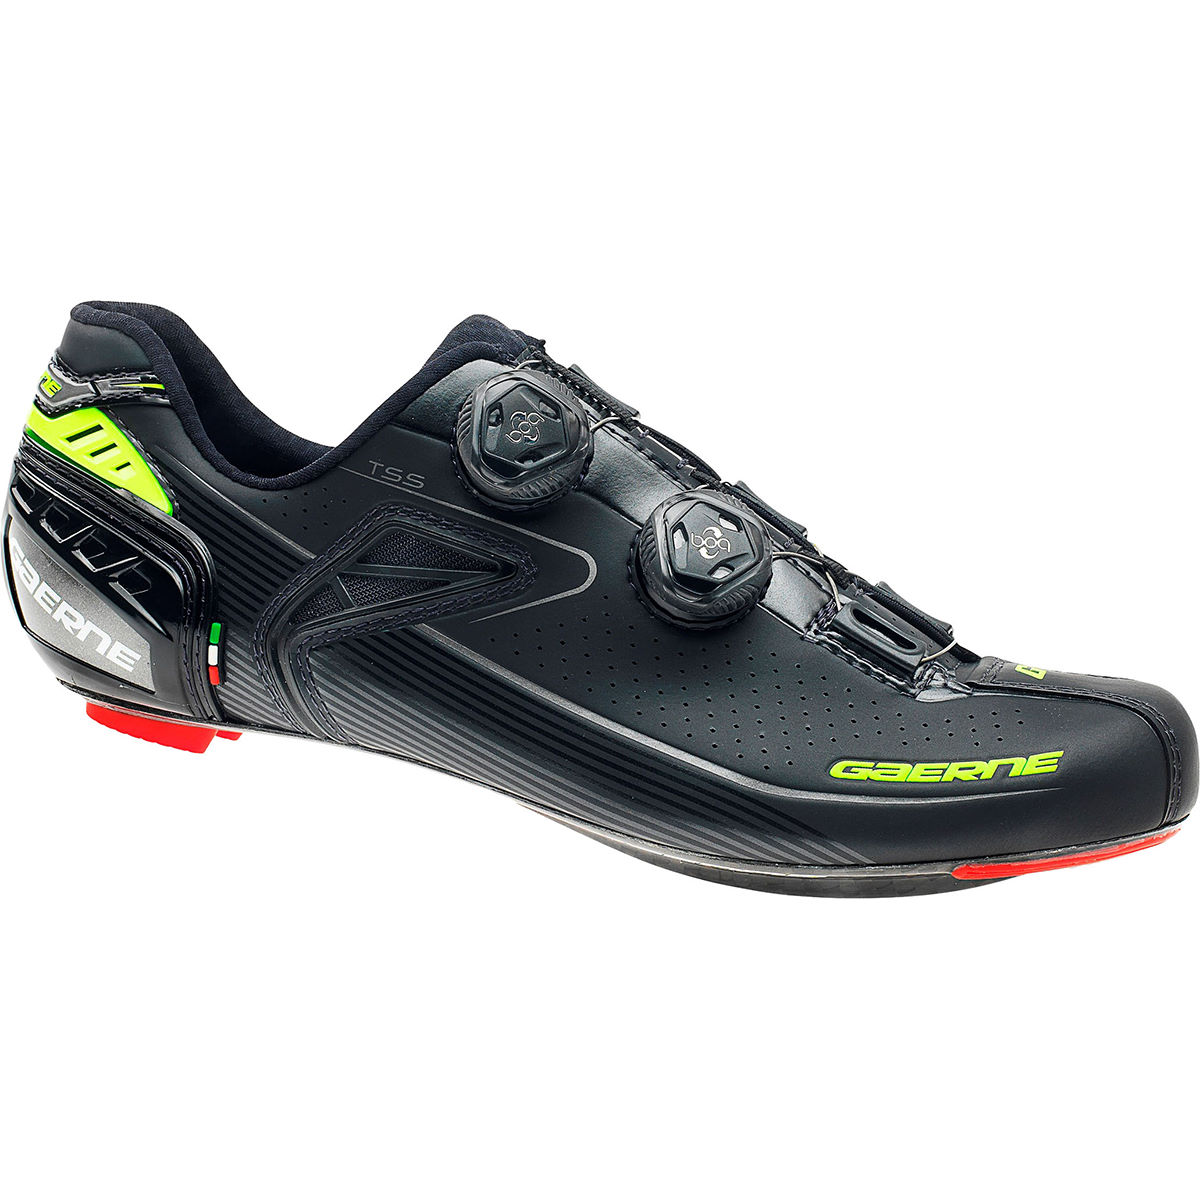 Gaerne Gaerne Composite Carbon Chrono+ Shoes   Cycling Shoes